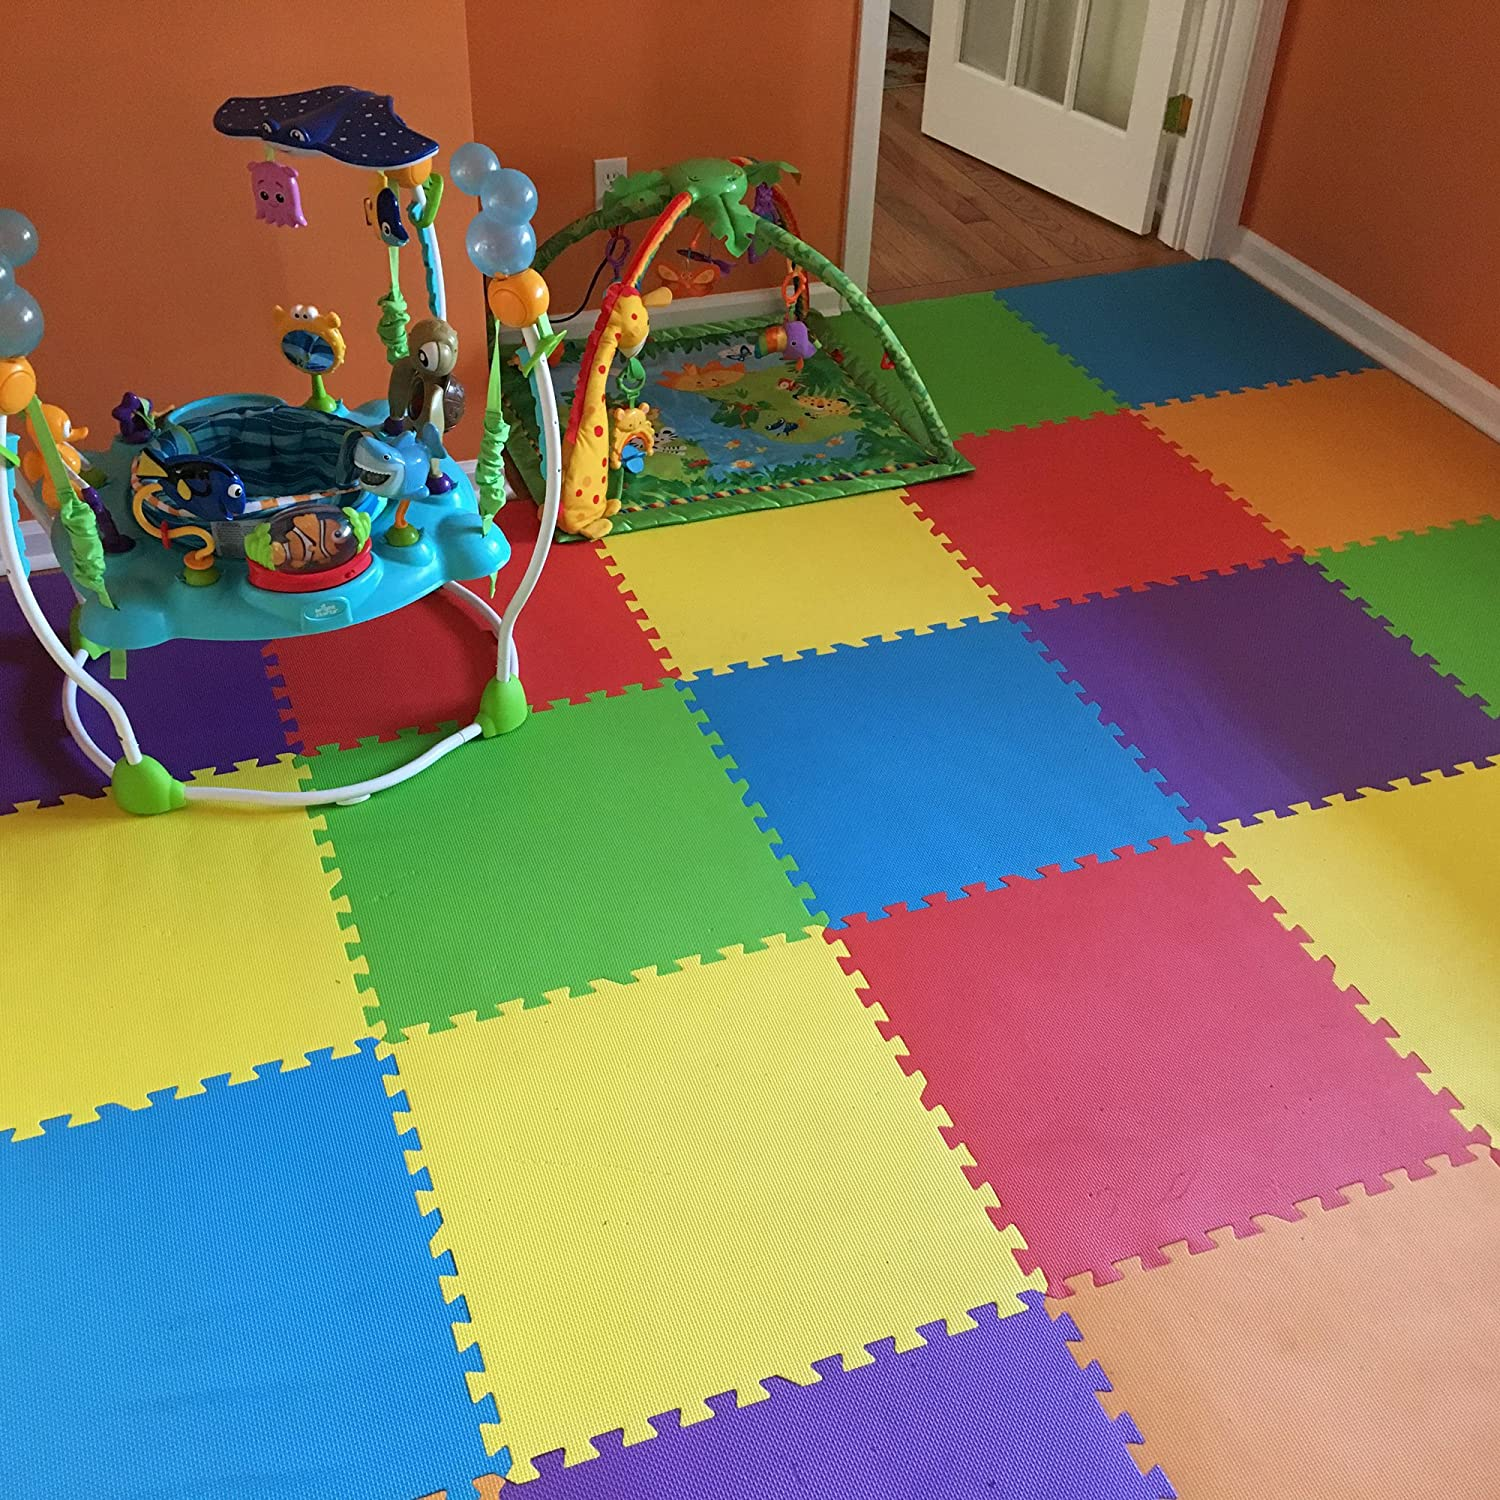 Gym floor tiles amazon image collections tile flooring design ideas amazon incstores rainbow foam tiles 6 pack 2ft x 2ft amazon incstores rainbow foam tiles 6 dailygadgetfo Image collections